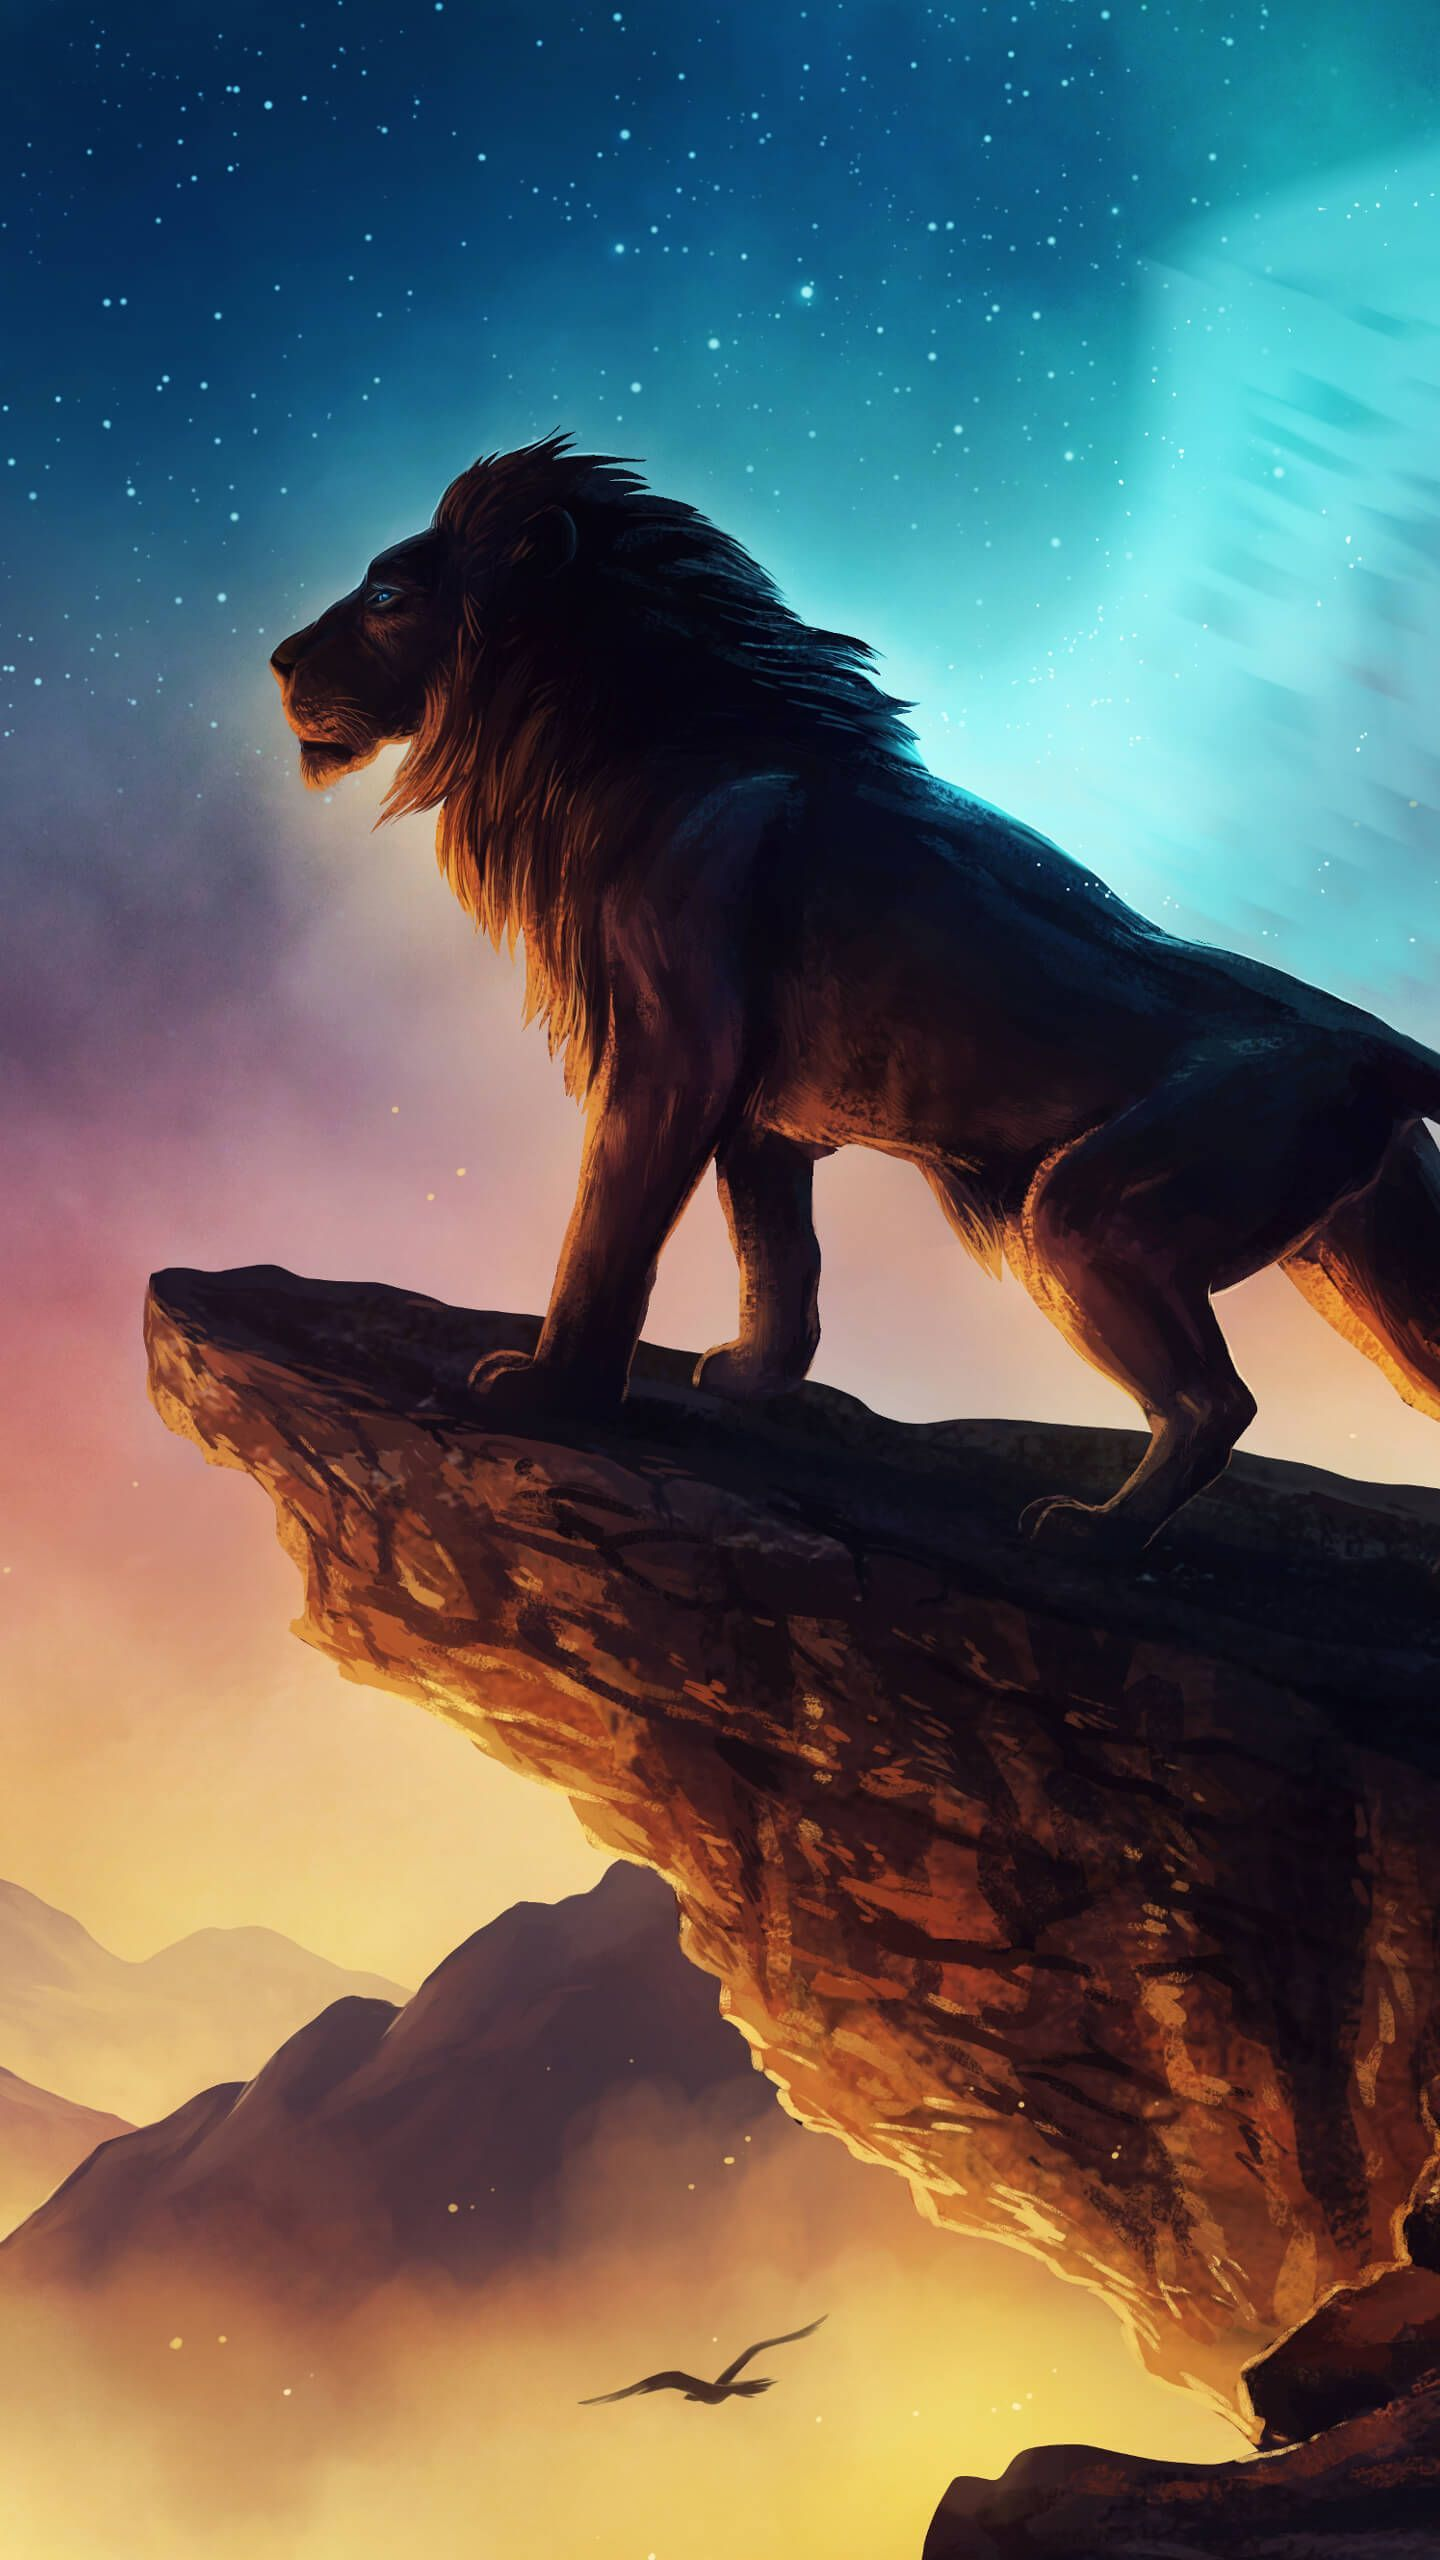 Lion King 4K Wallpapers - Top Free Lion King 4K Backgrounds